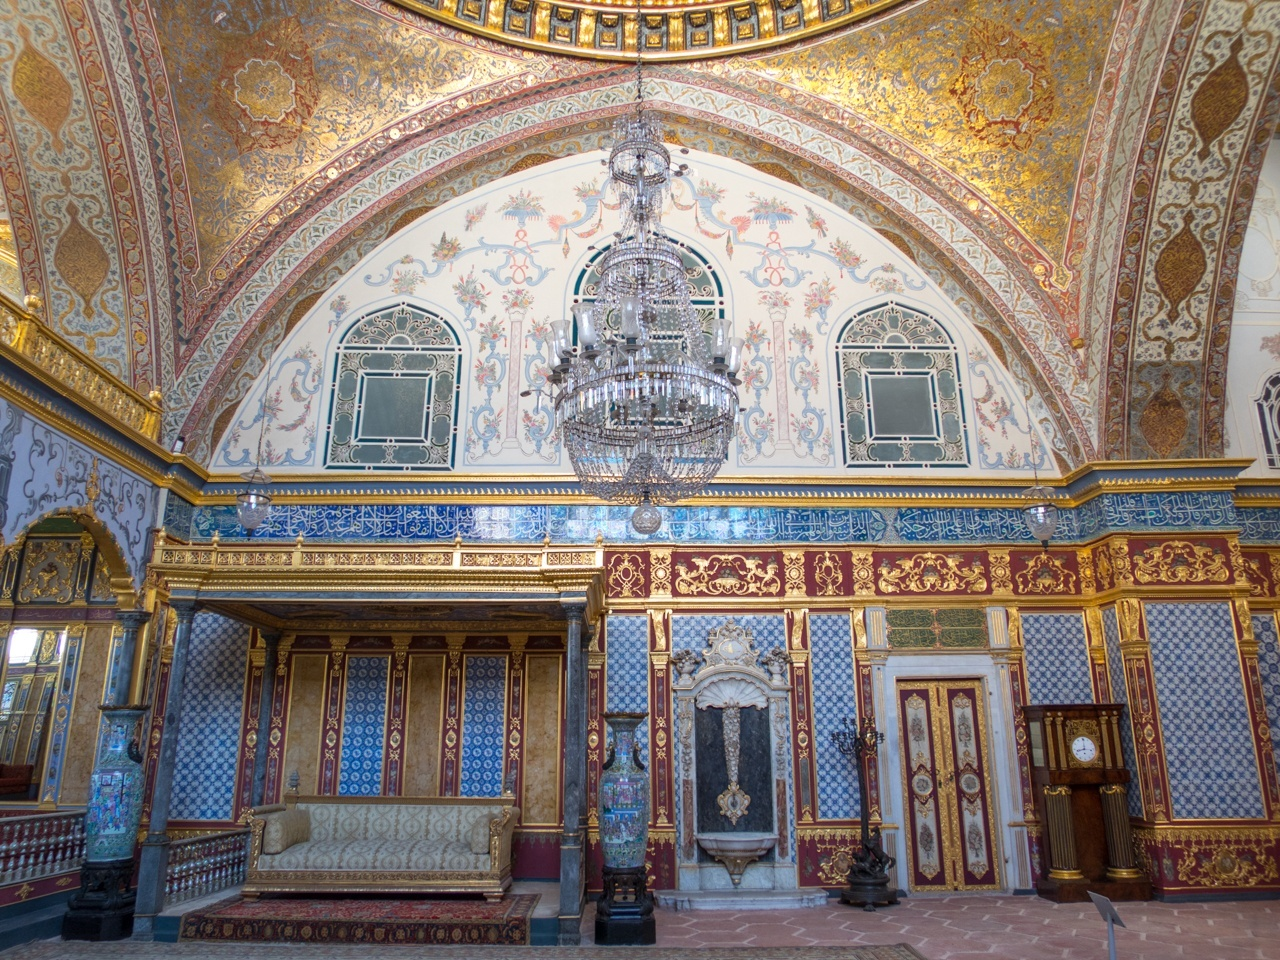 A room in the harem at Topkapi Palace